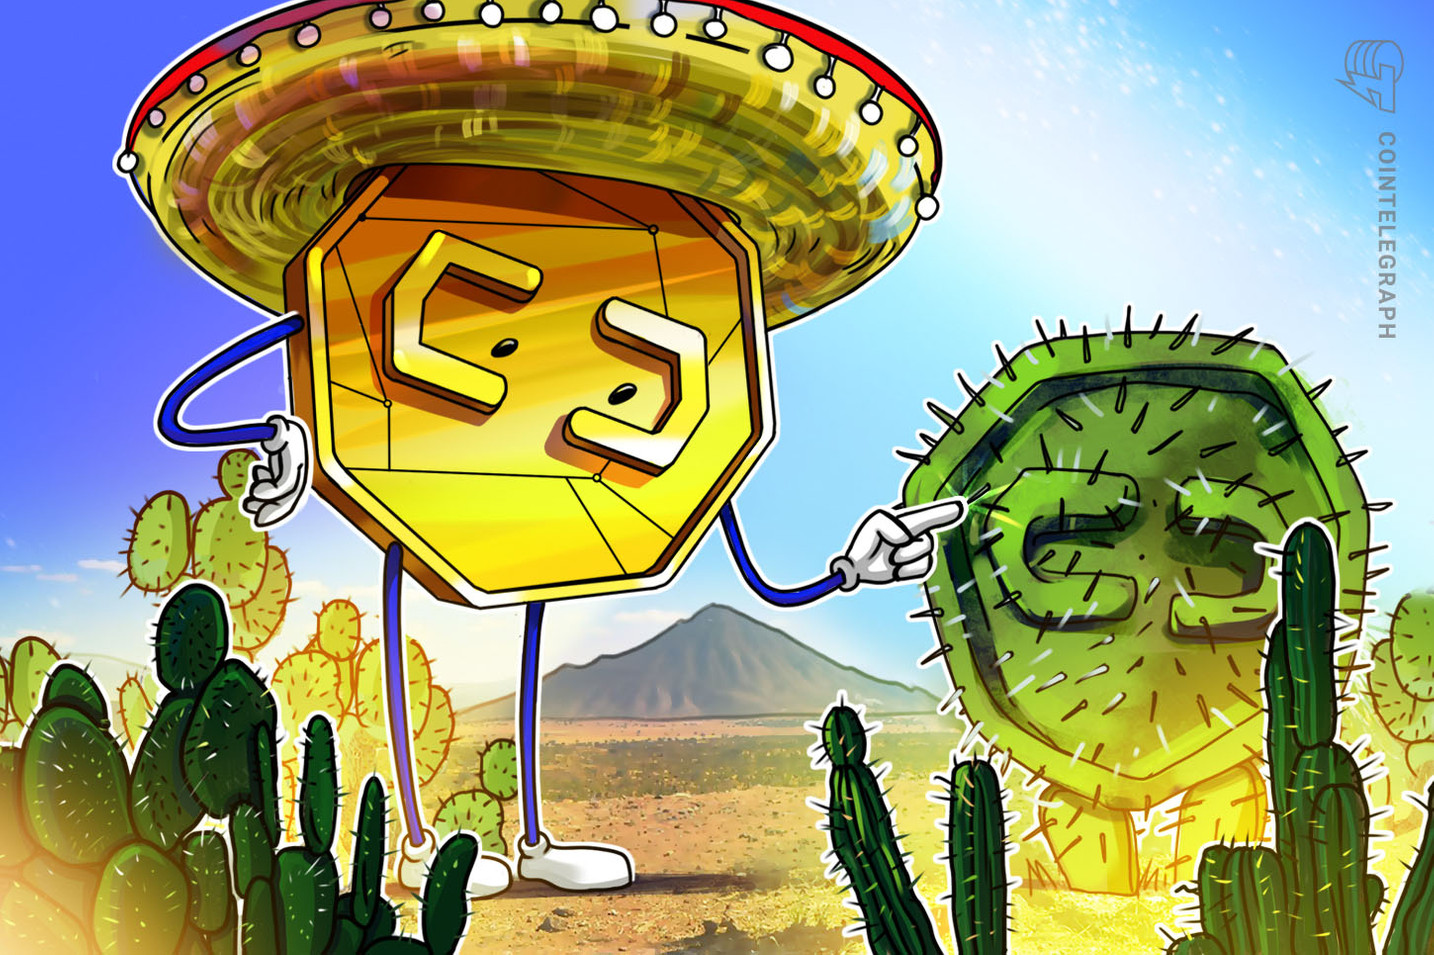 Cryptojacking and Ransomware Cases Grow in Mexico